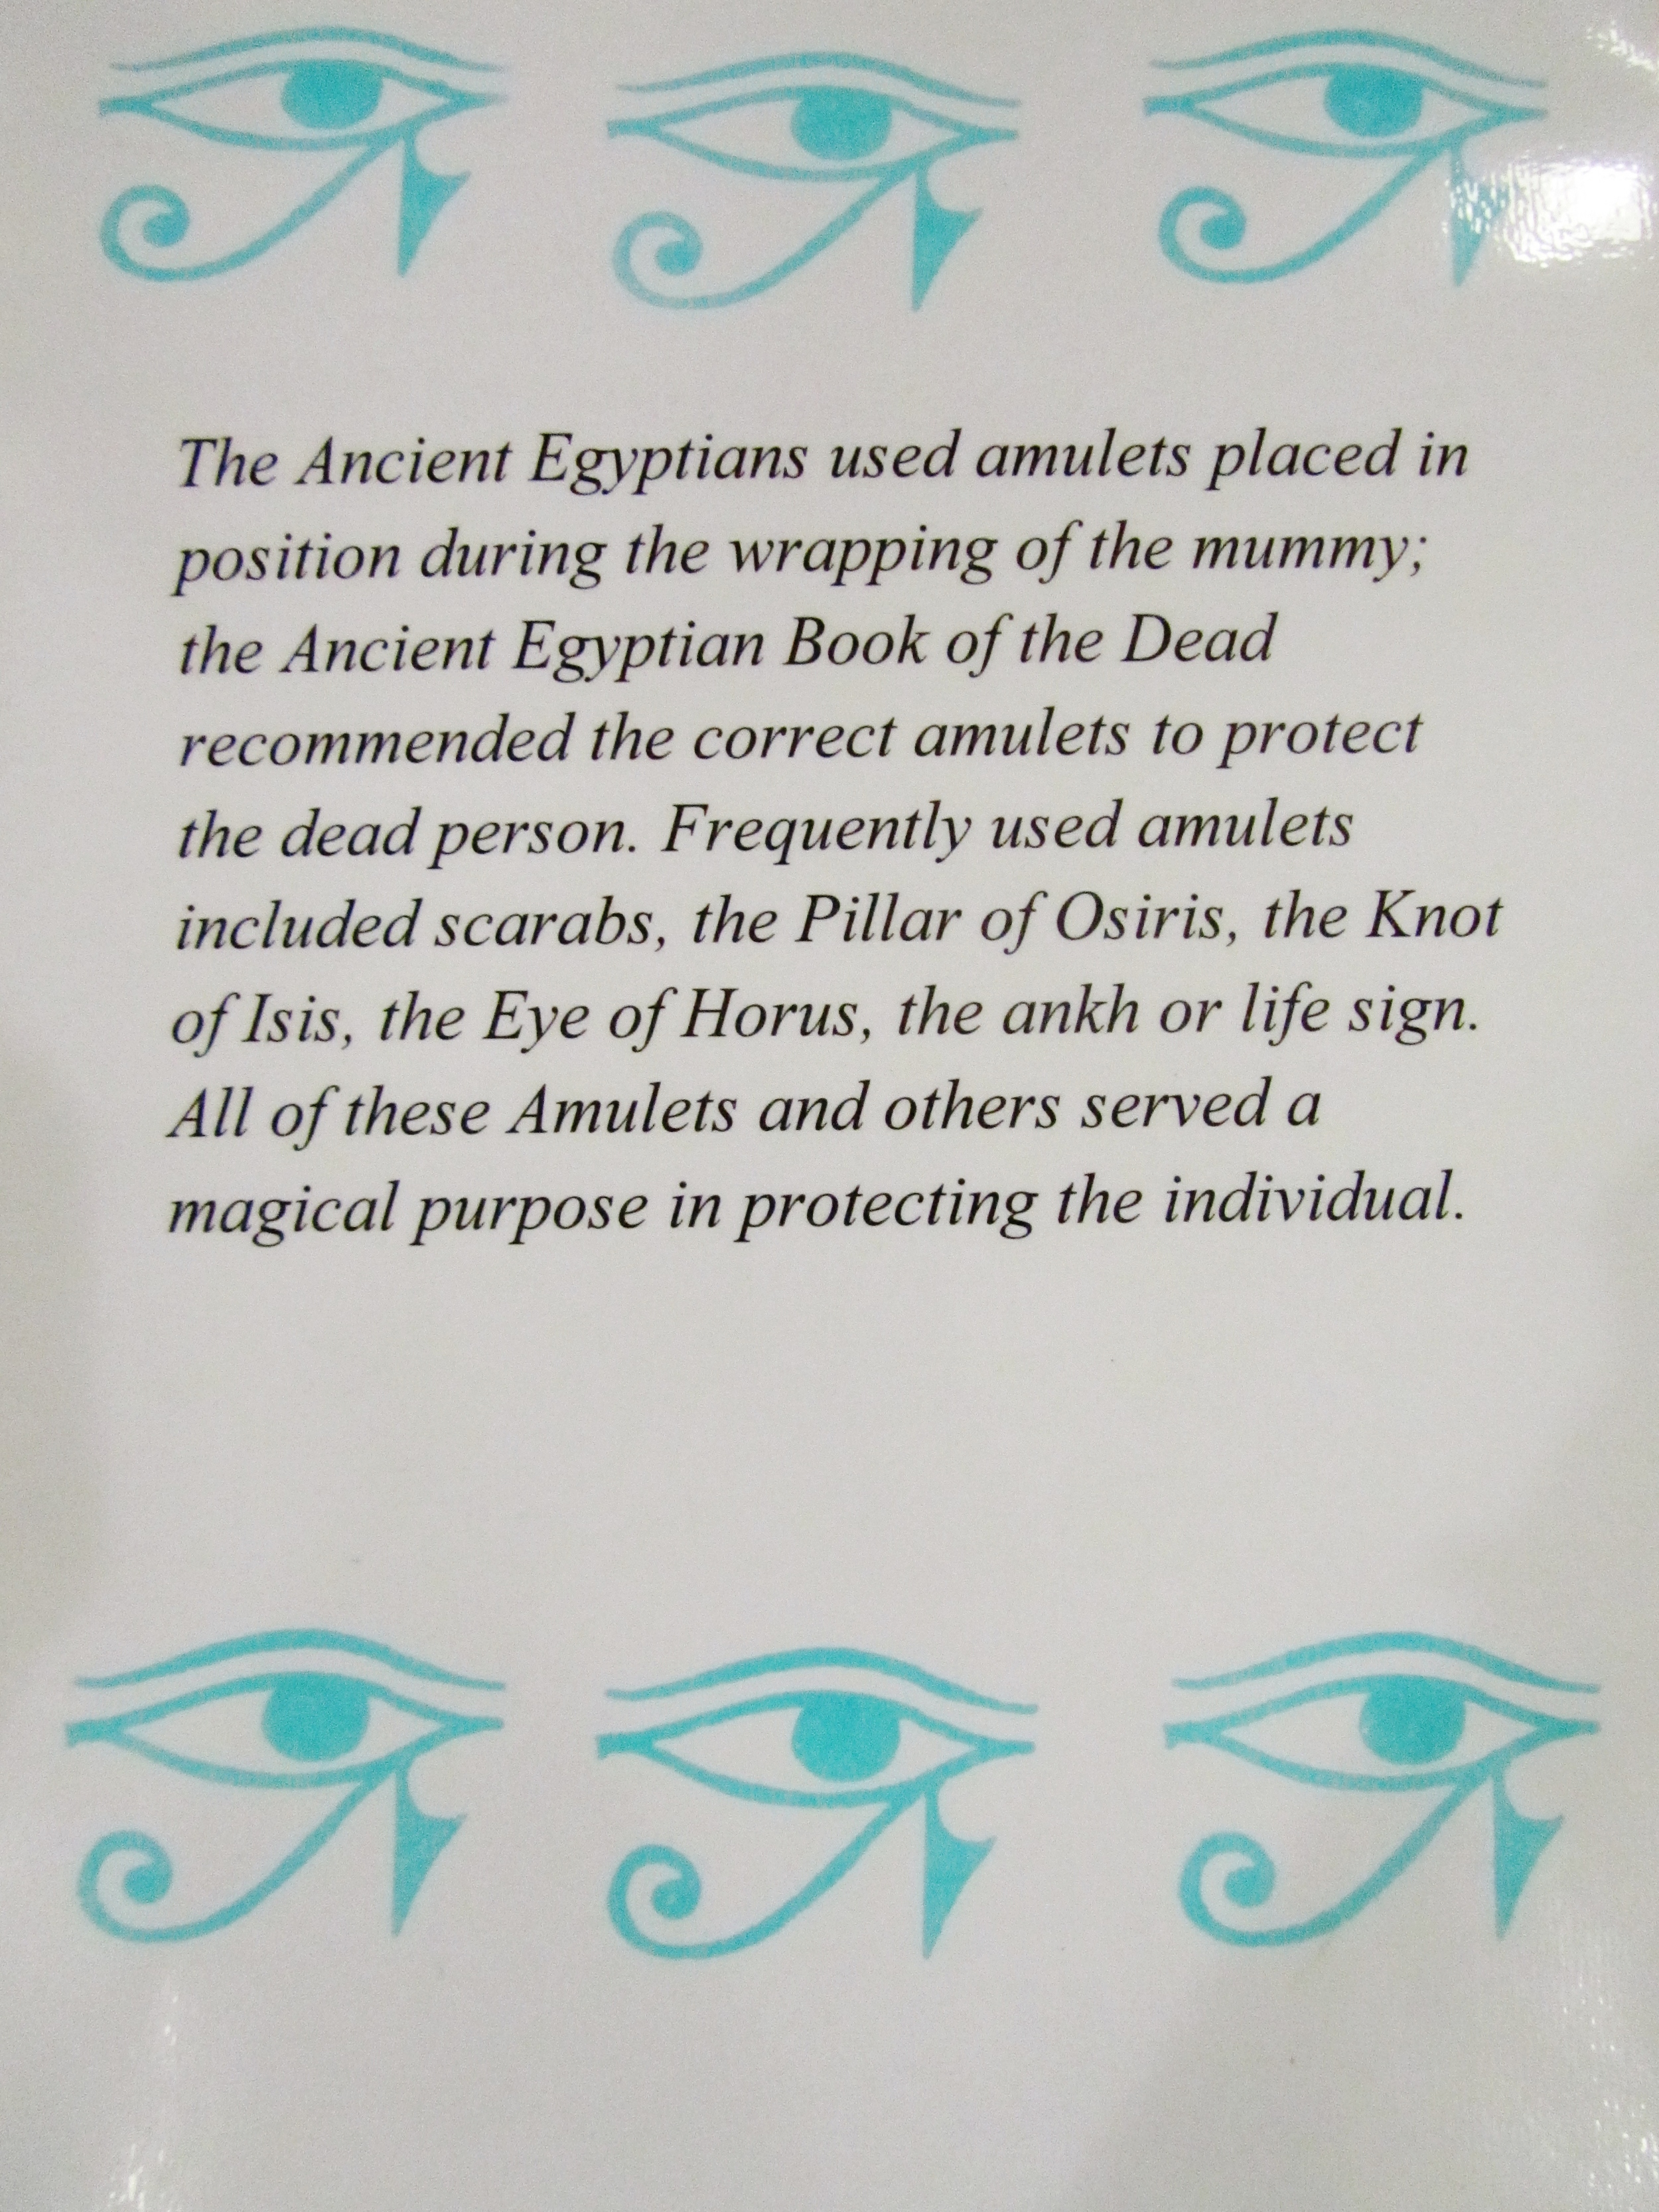 after hours manchester museum amulet text info.JPG